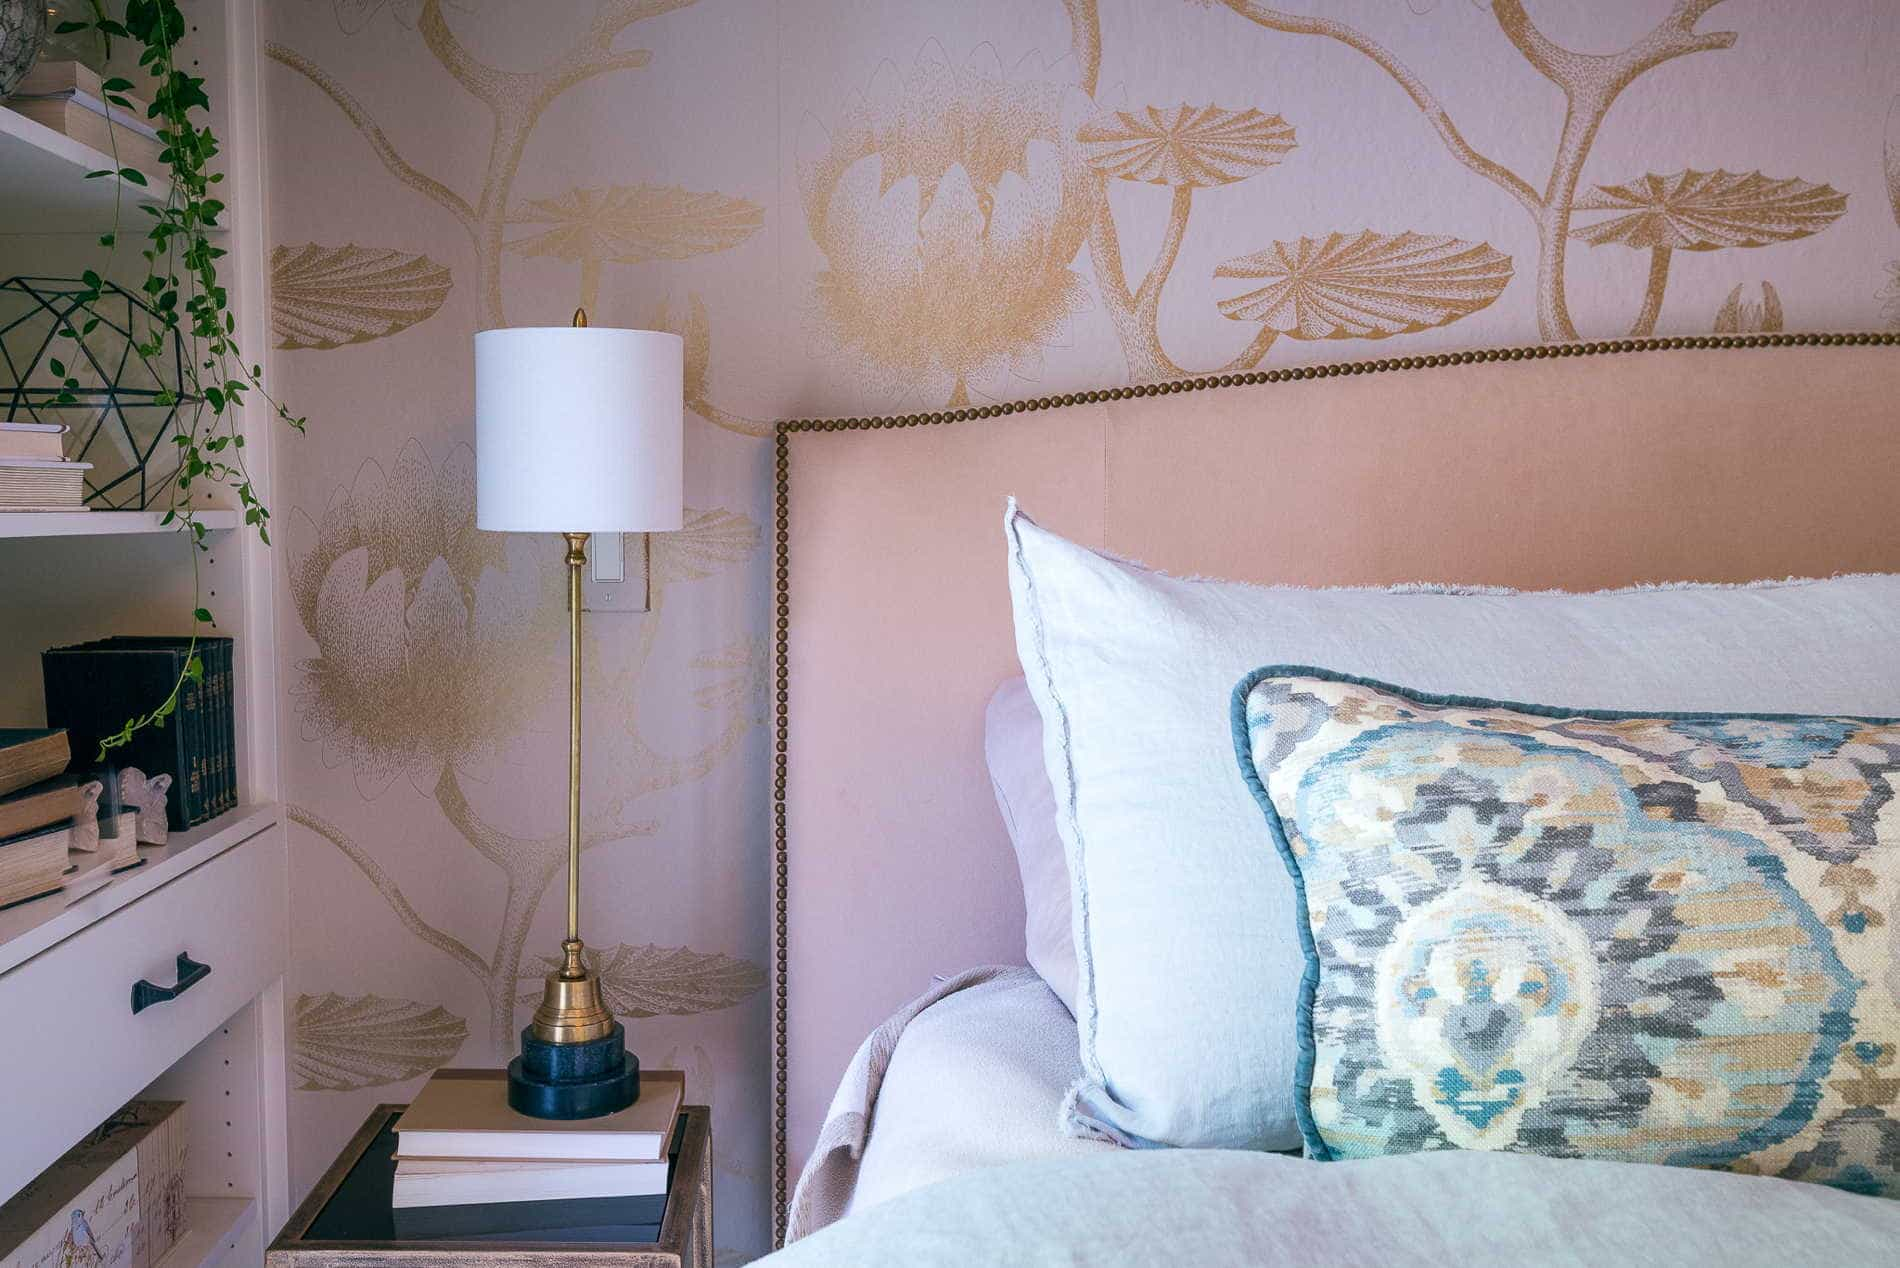 Terra Firma Home designer Krissy Millner offers master bedroom touches anyone can do.